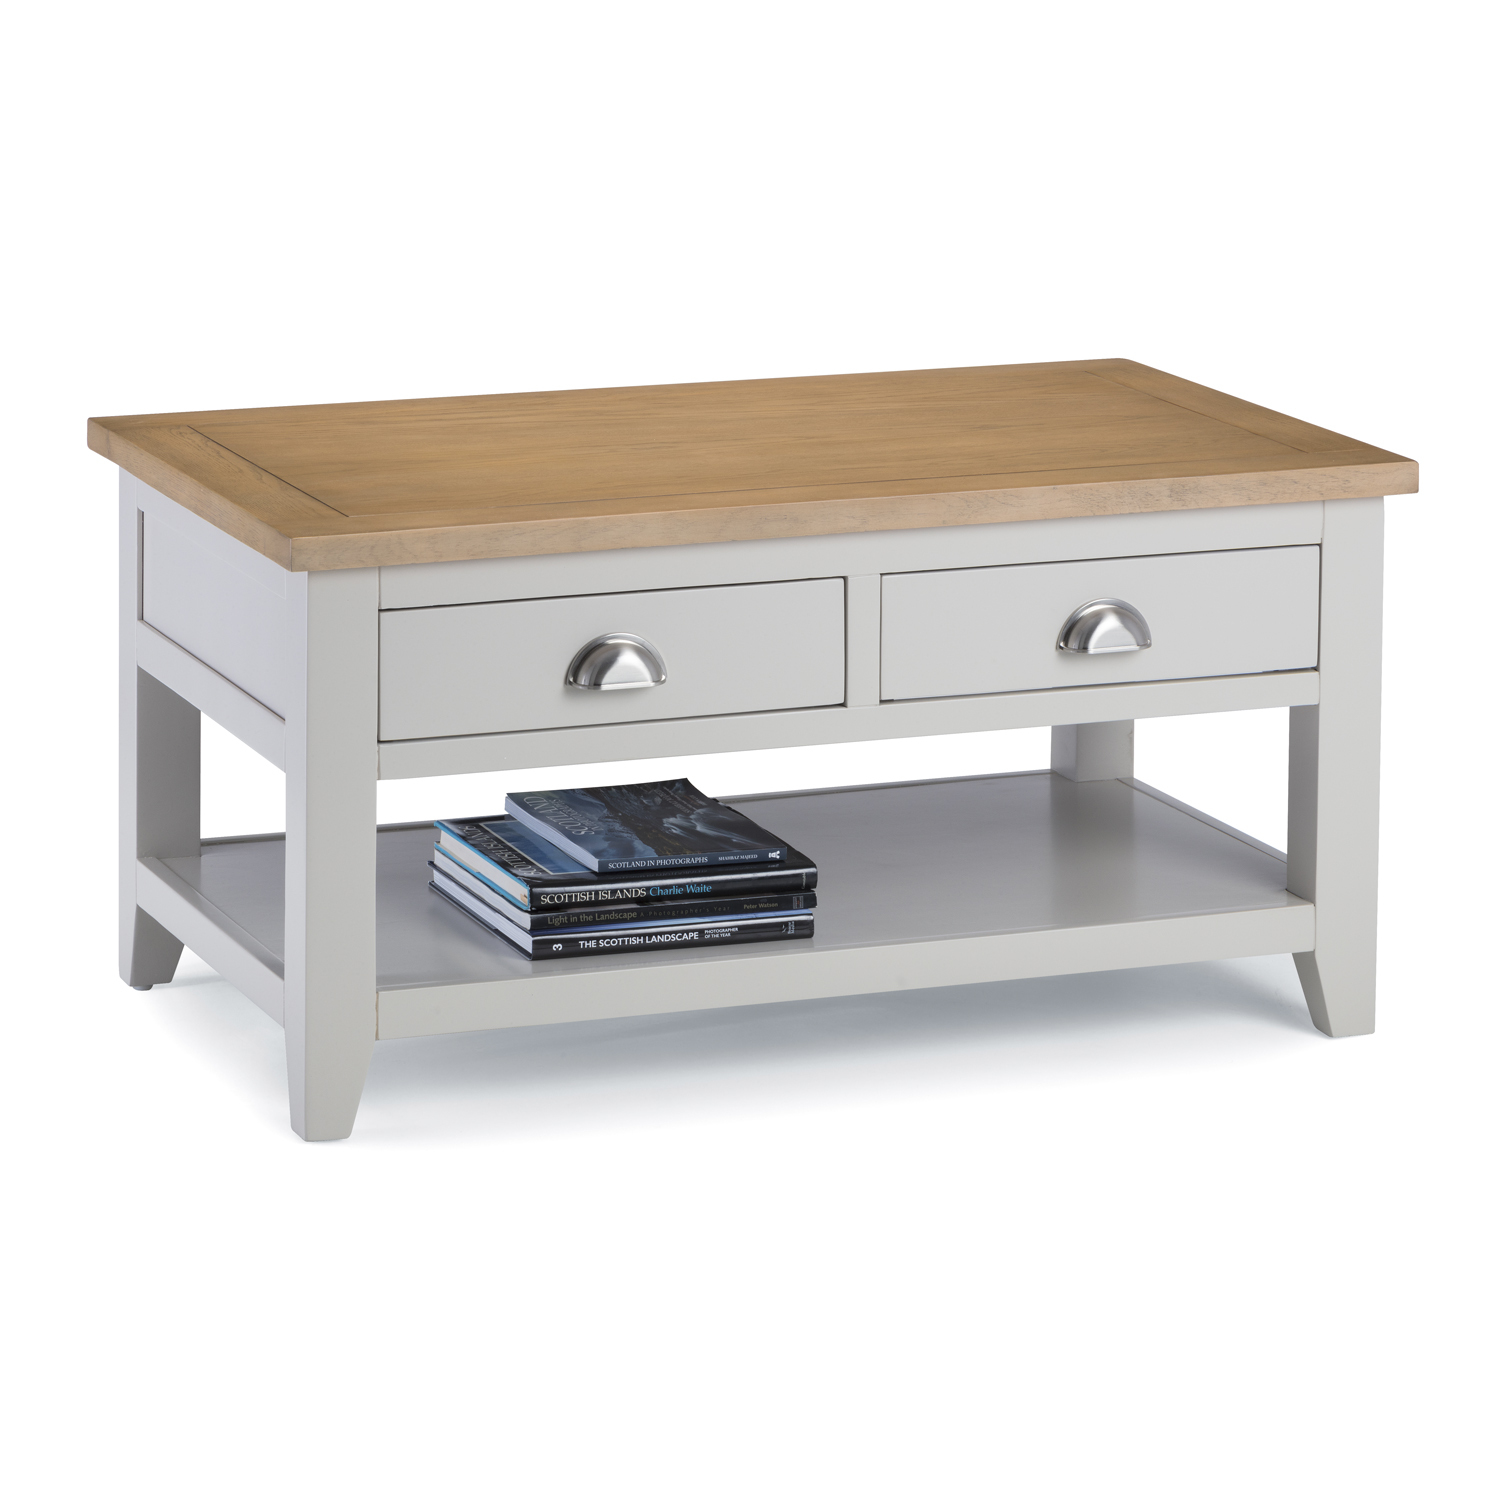 richmond drawer coffee table end with drawers product code ashley bailey furniture pallet how thick glass top stanley wood metal box between two recliners patio only triangular